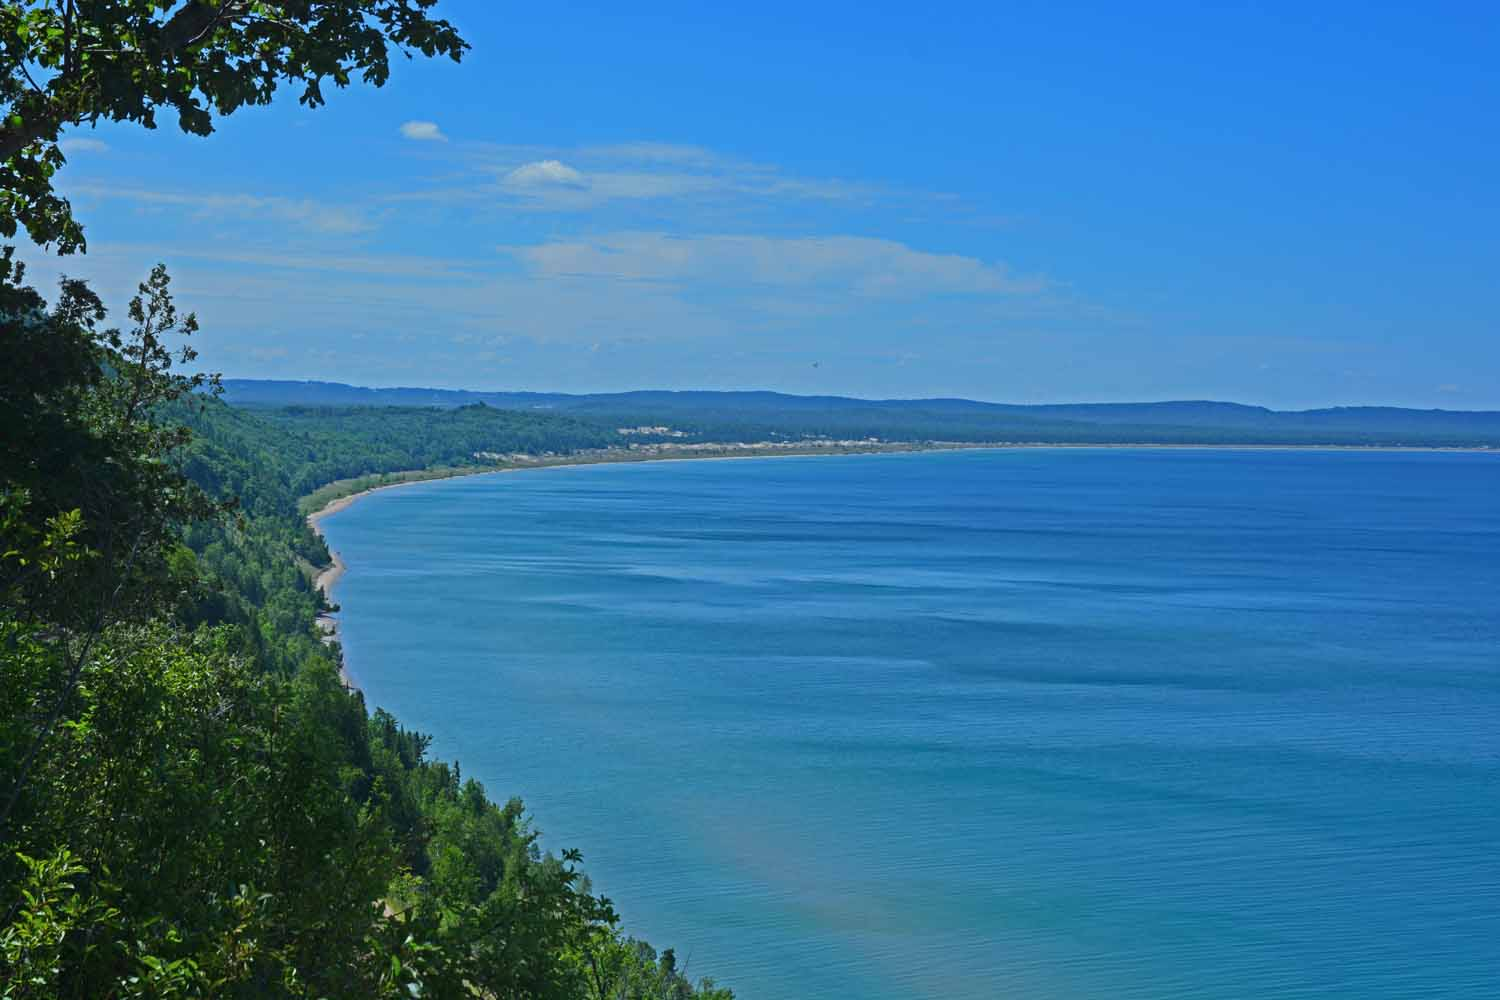 Lake Michigan At Sleeping Bear Looking South West